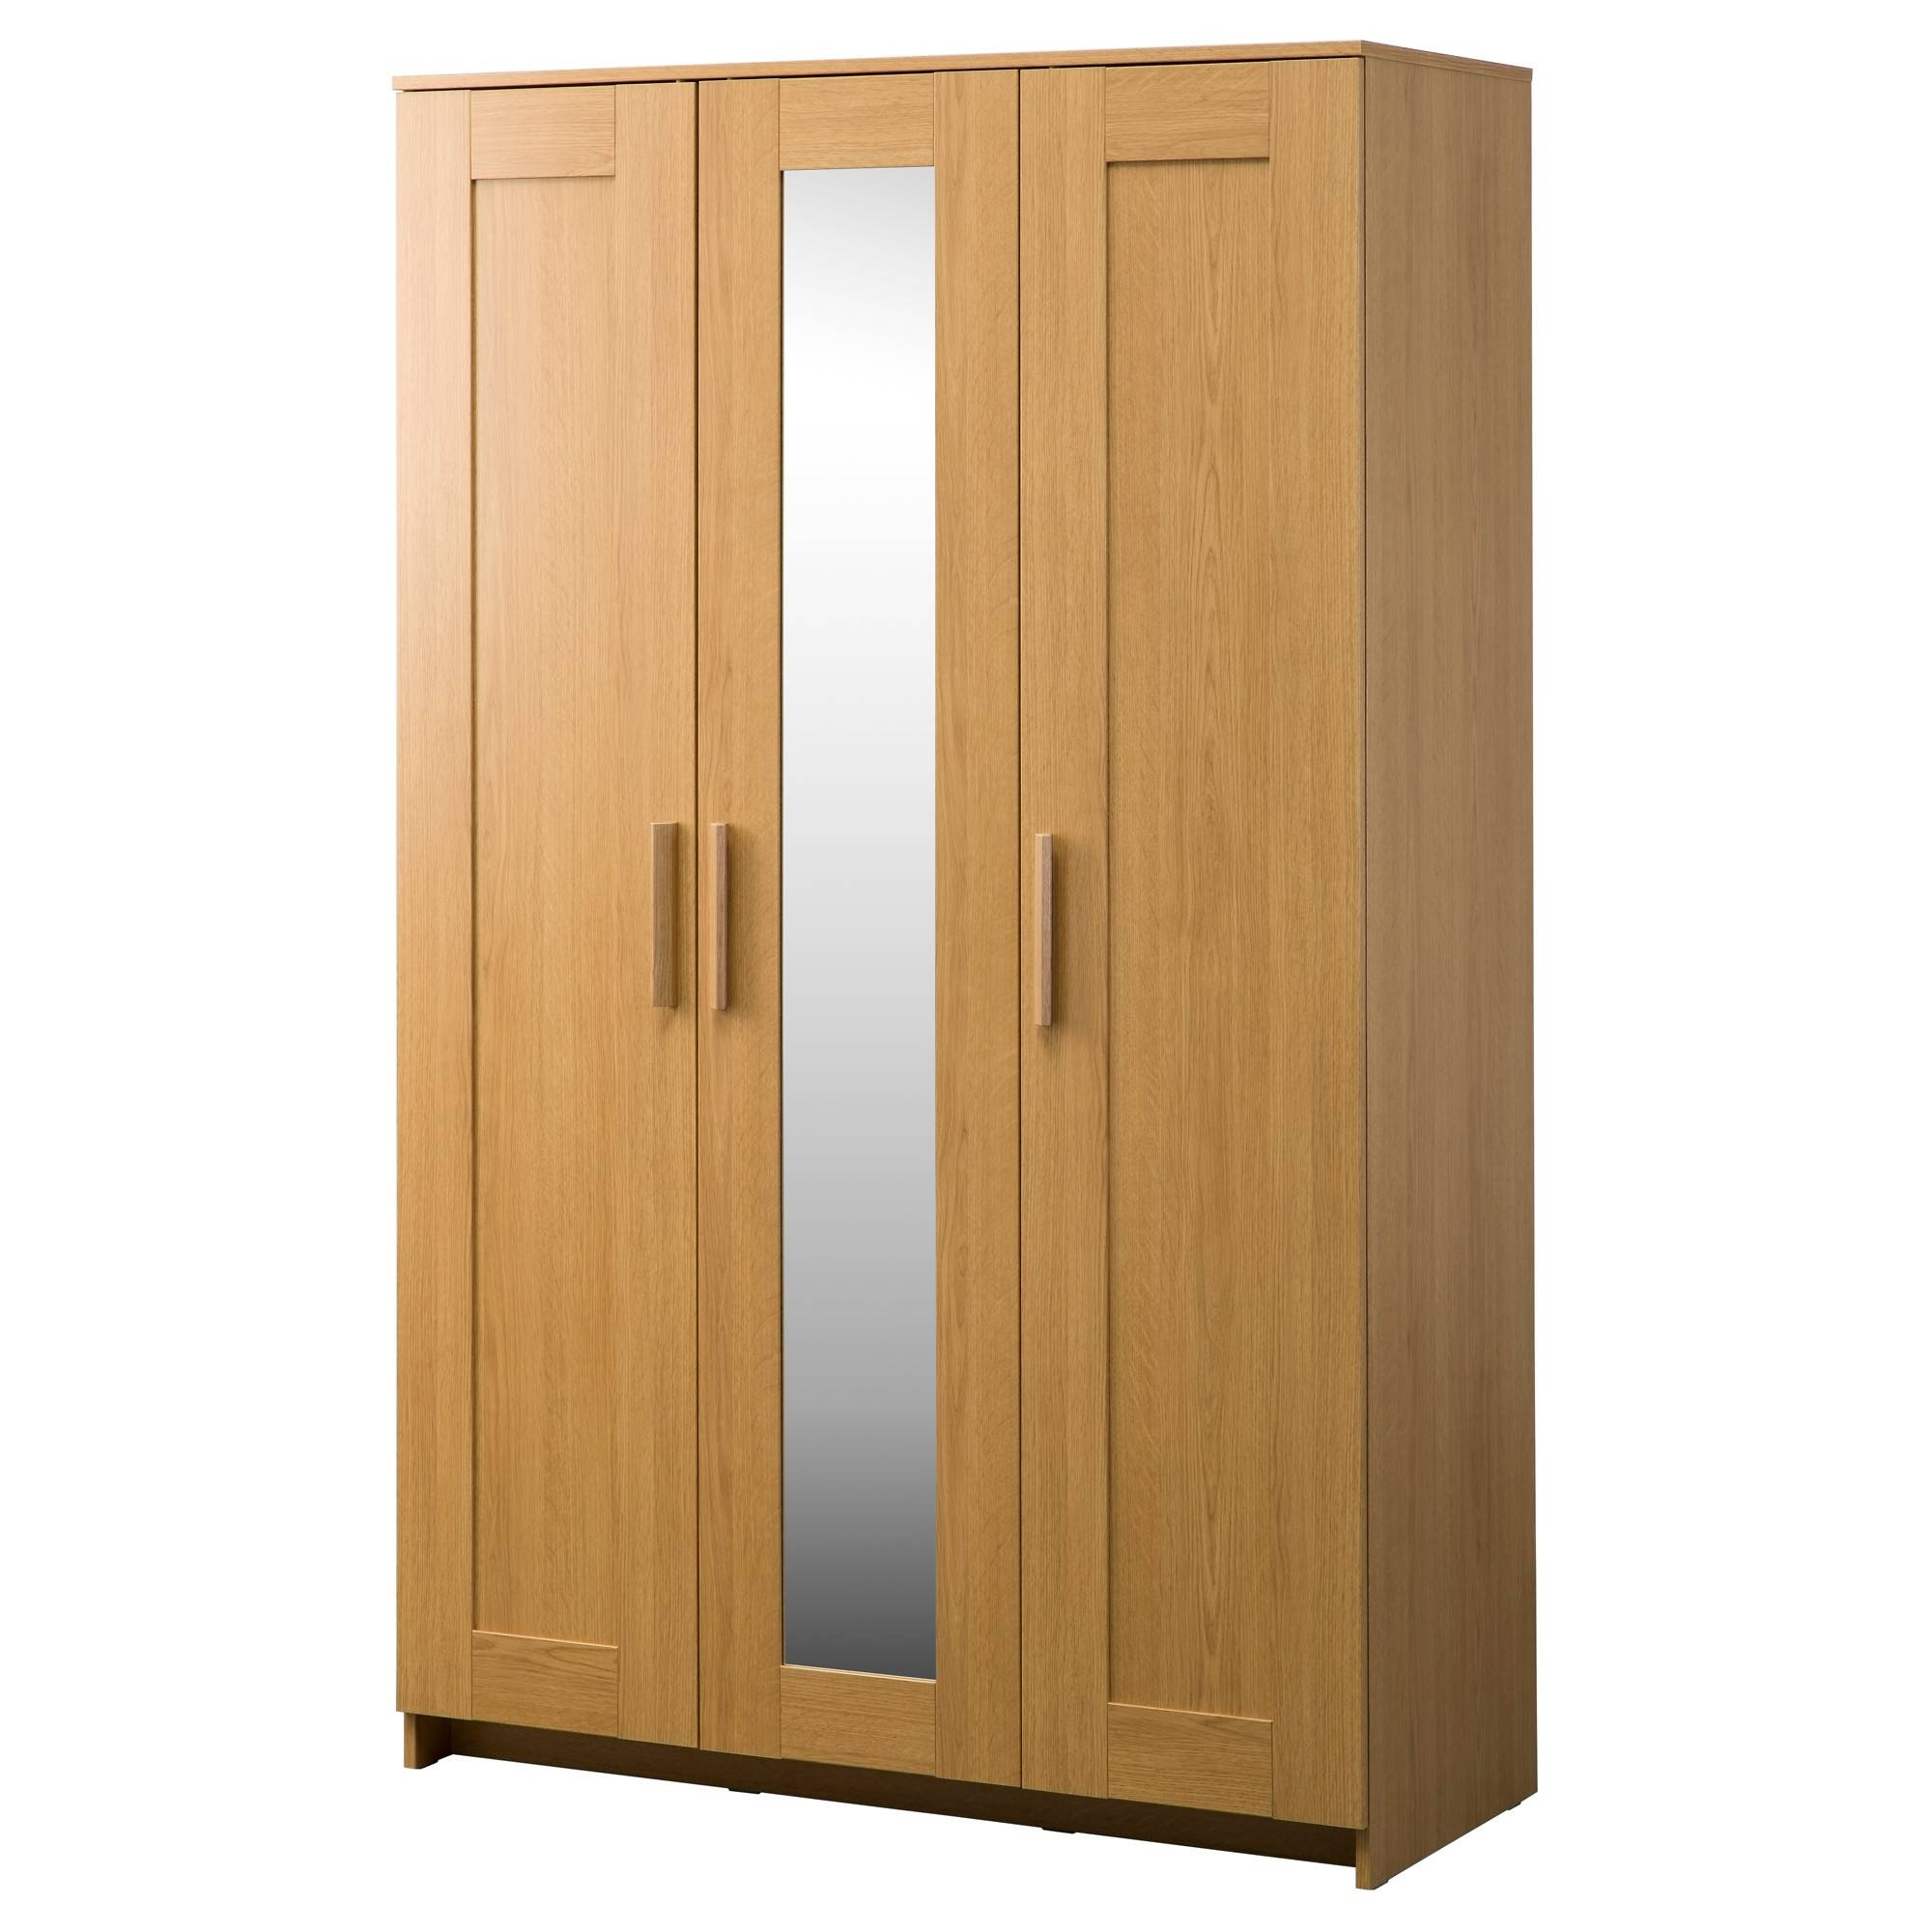 Wardrobes | Ikea throughout Double Hanging Rail Wardrobes (Image 28 of 30)